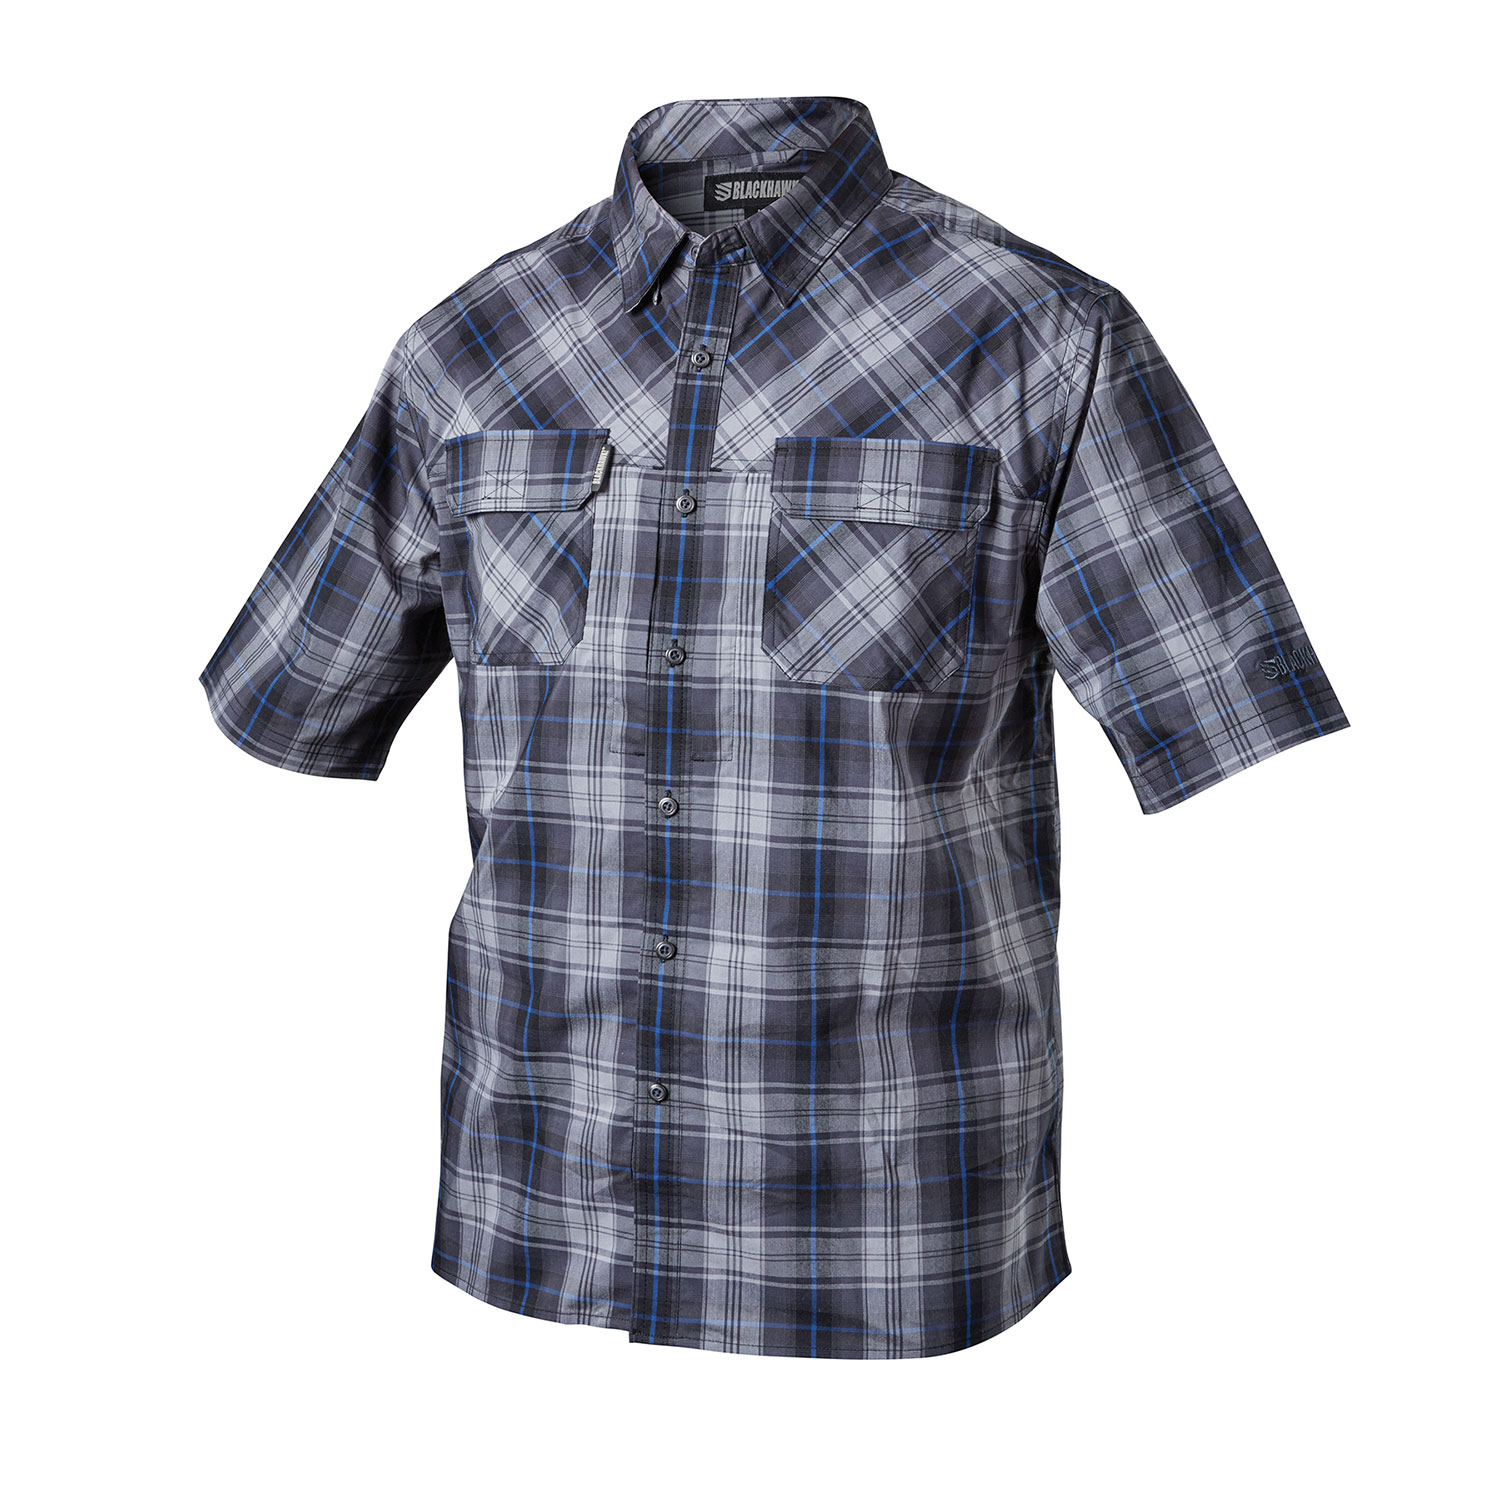 BLACKHAWK! 1730 Short Sleeve Shirt